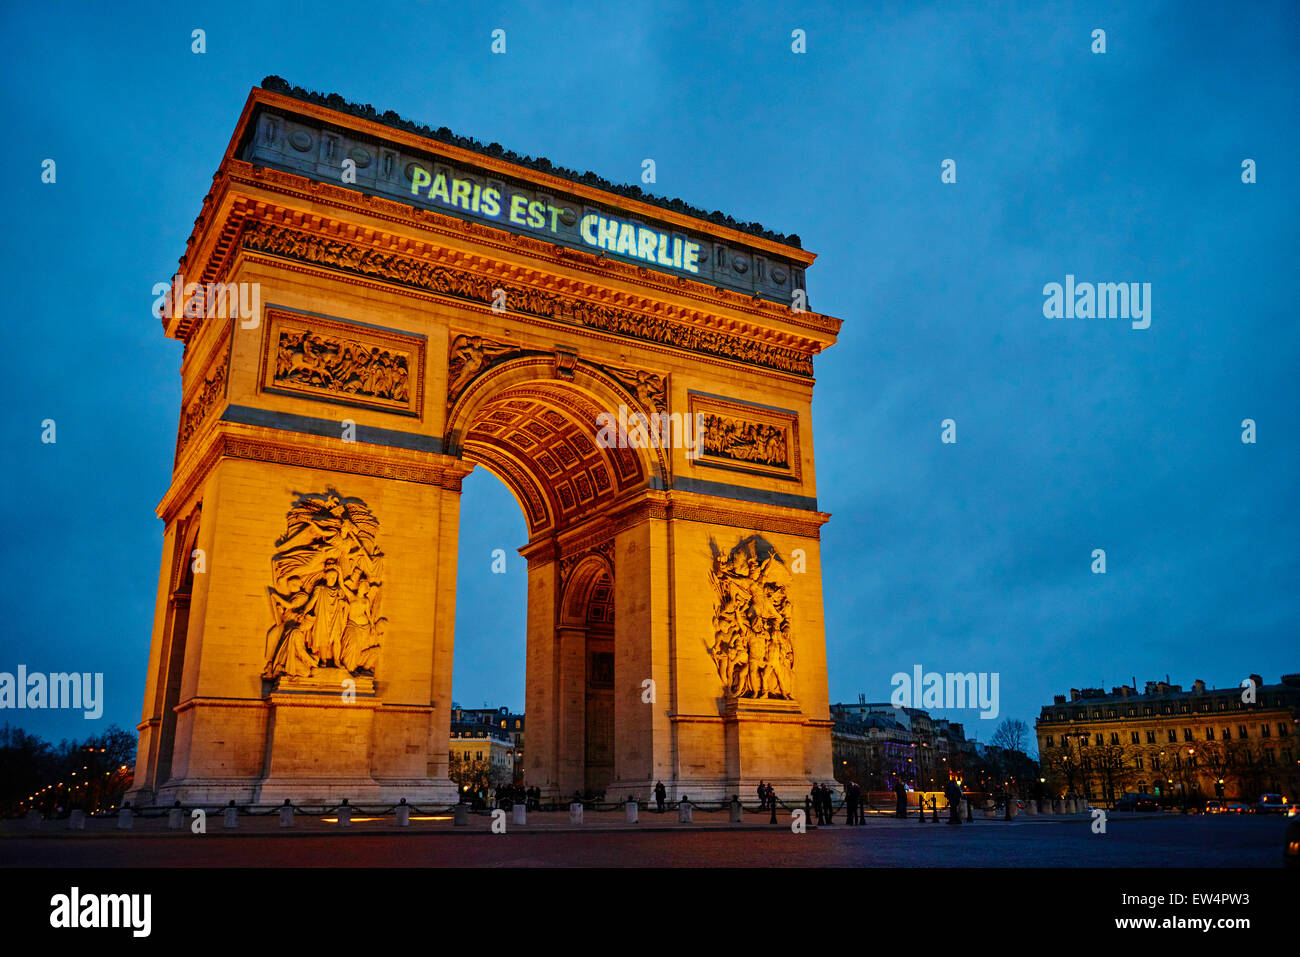 France, Paris, 11 january 2015 Paris is Charlie, for Charlie Hebdo, Arc de Triomphe - Stock Image